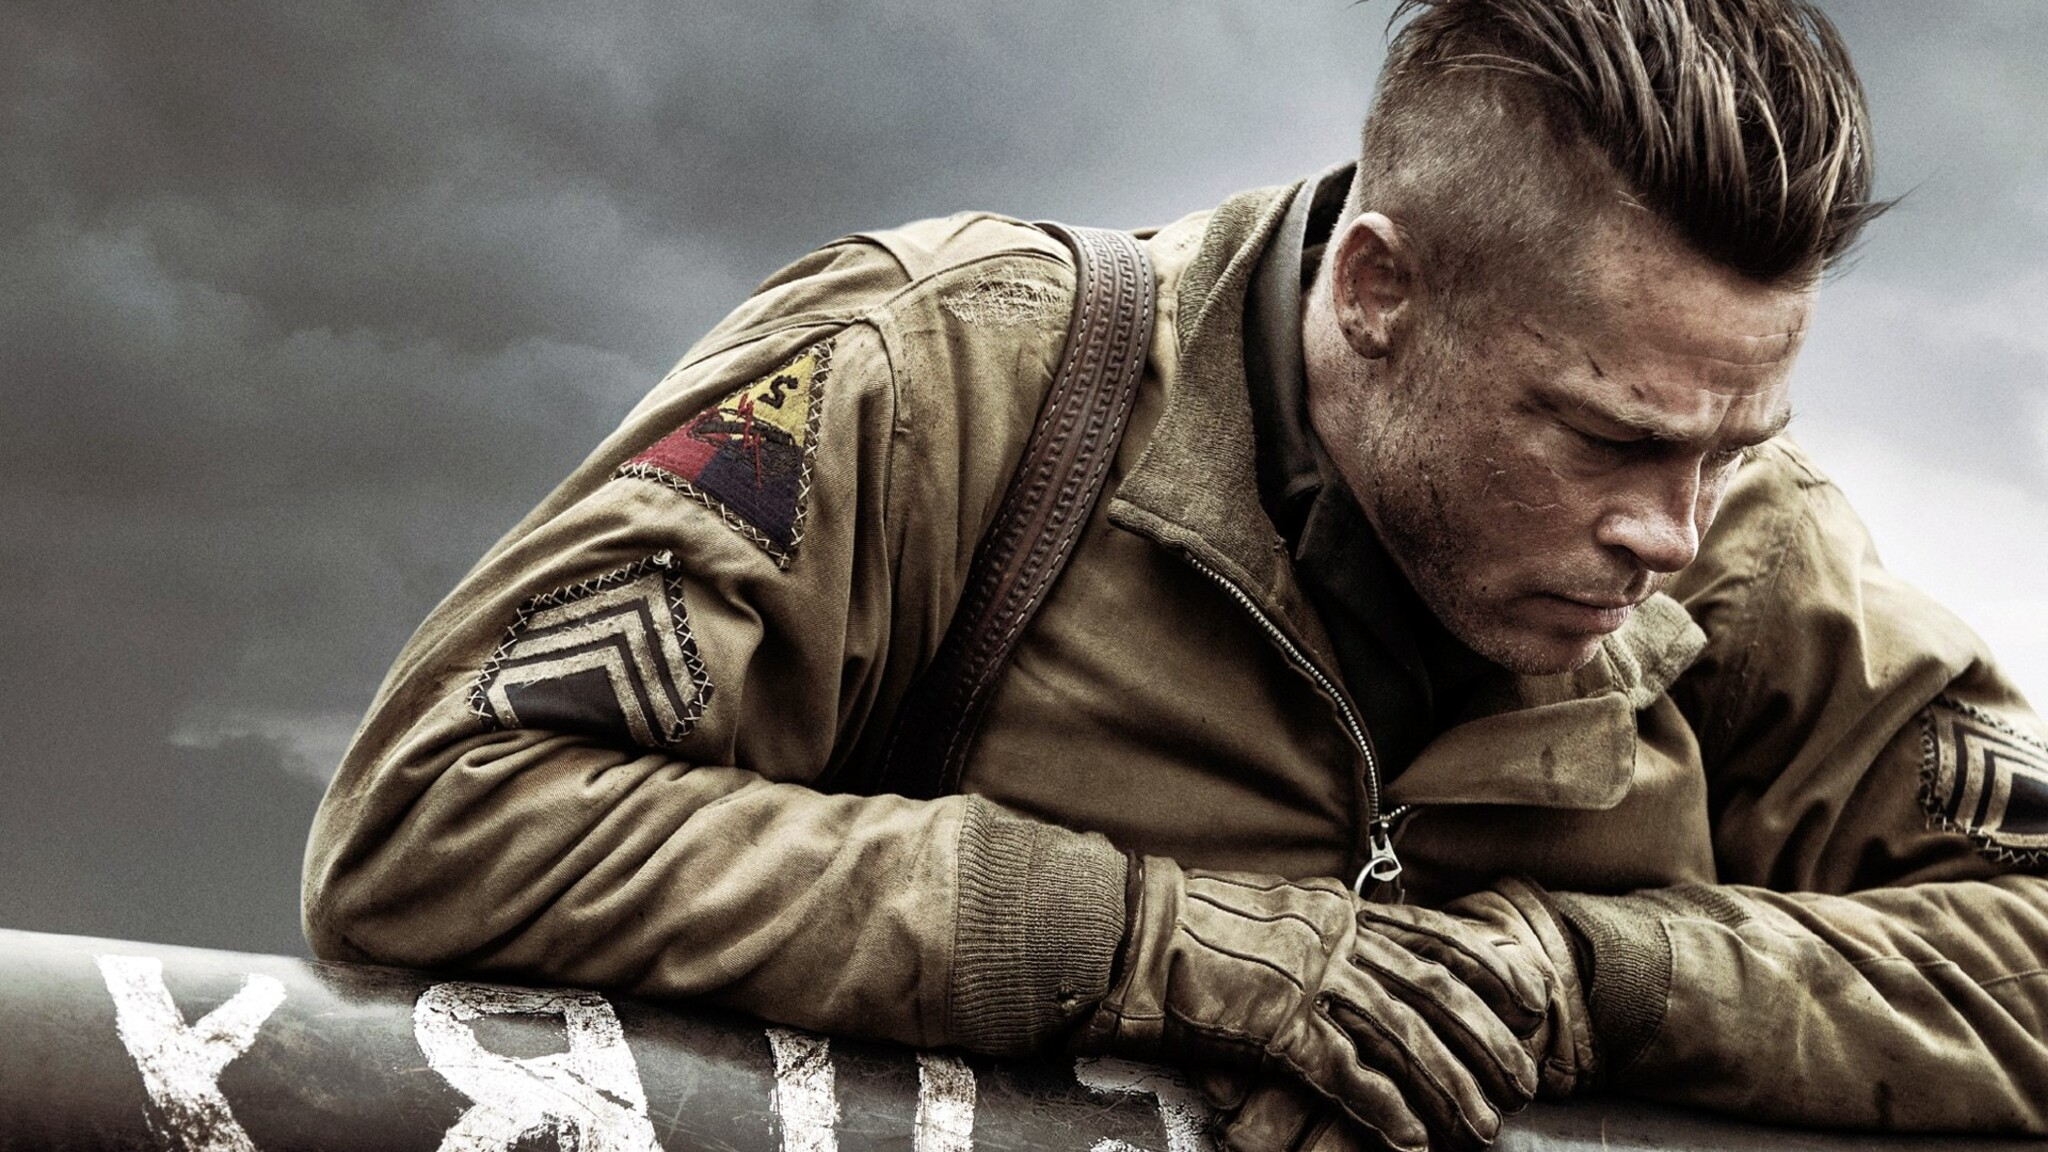 Images Of The Movie Fury: 2048x1152 Brad Pitt In Fury Movie 2048x1152 Resolution HD